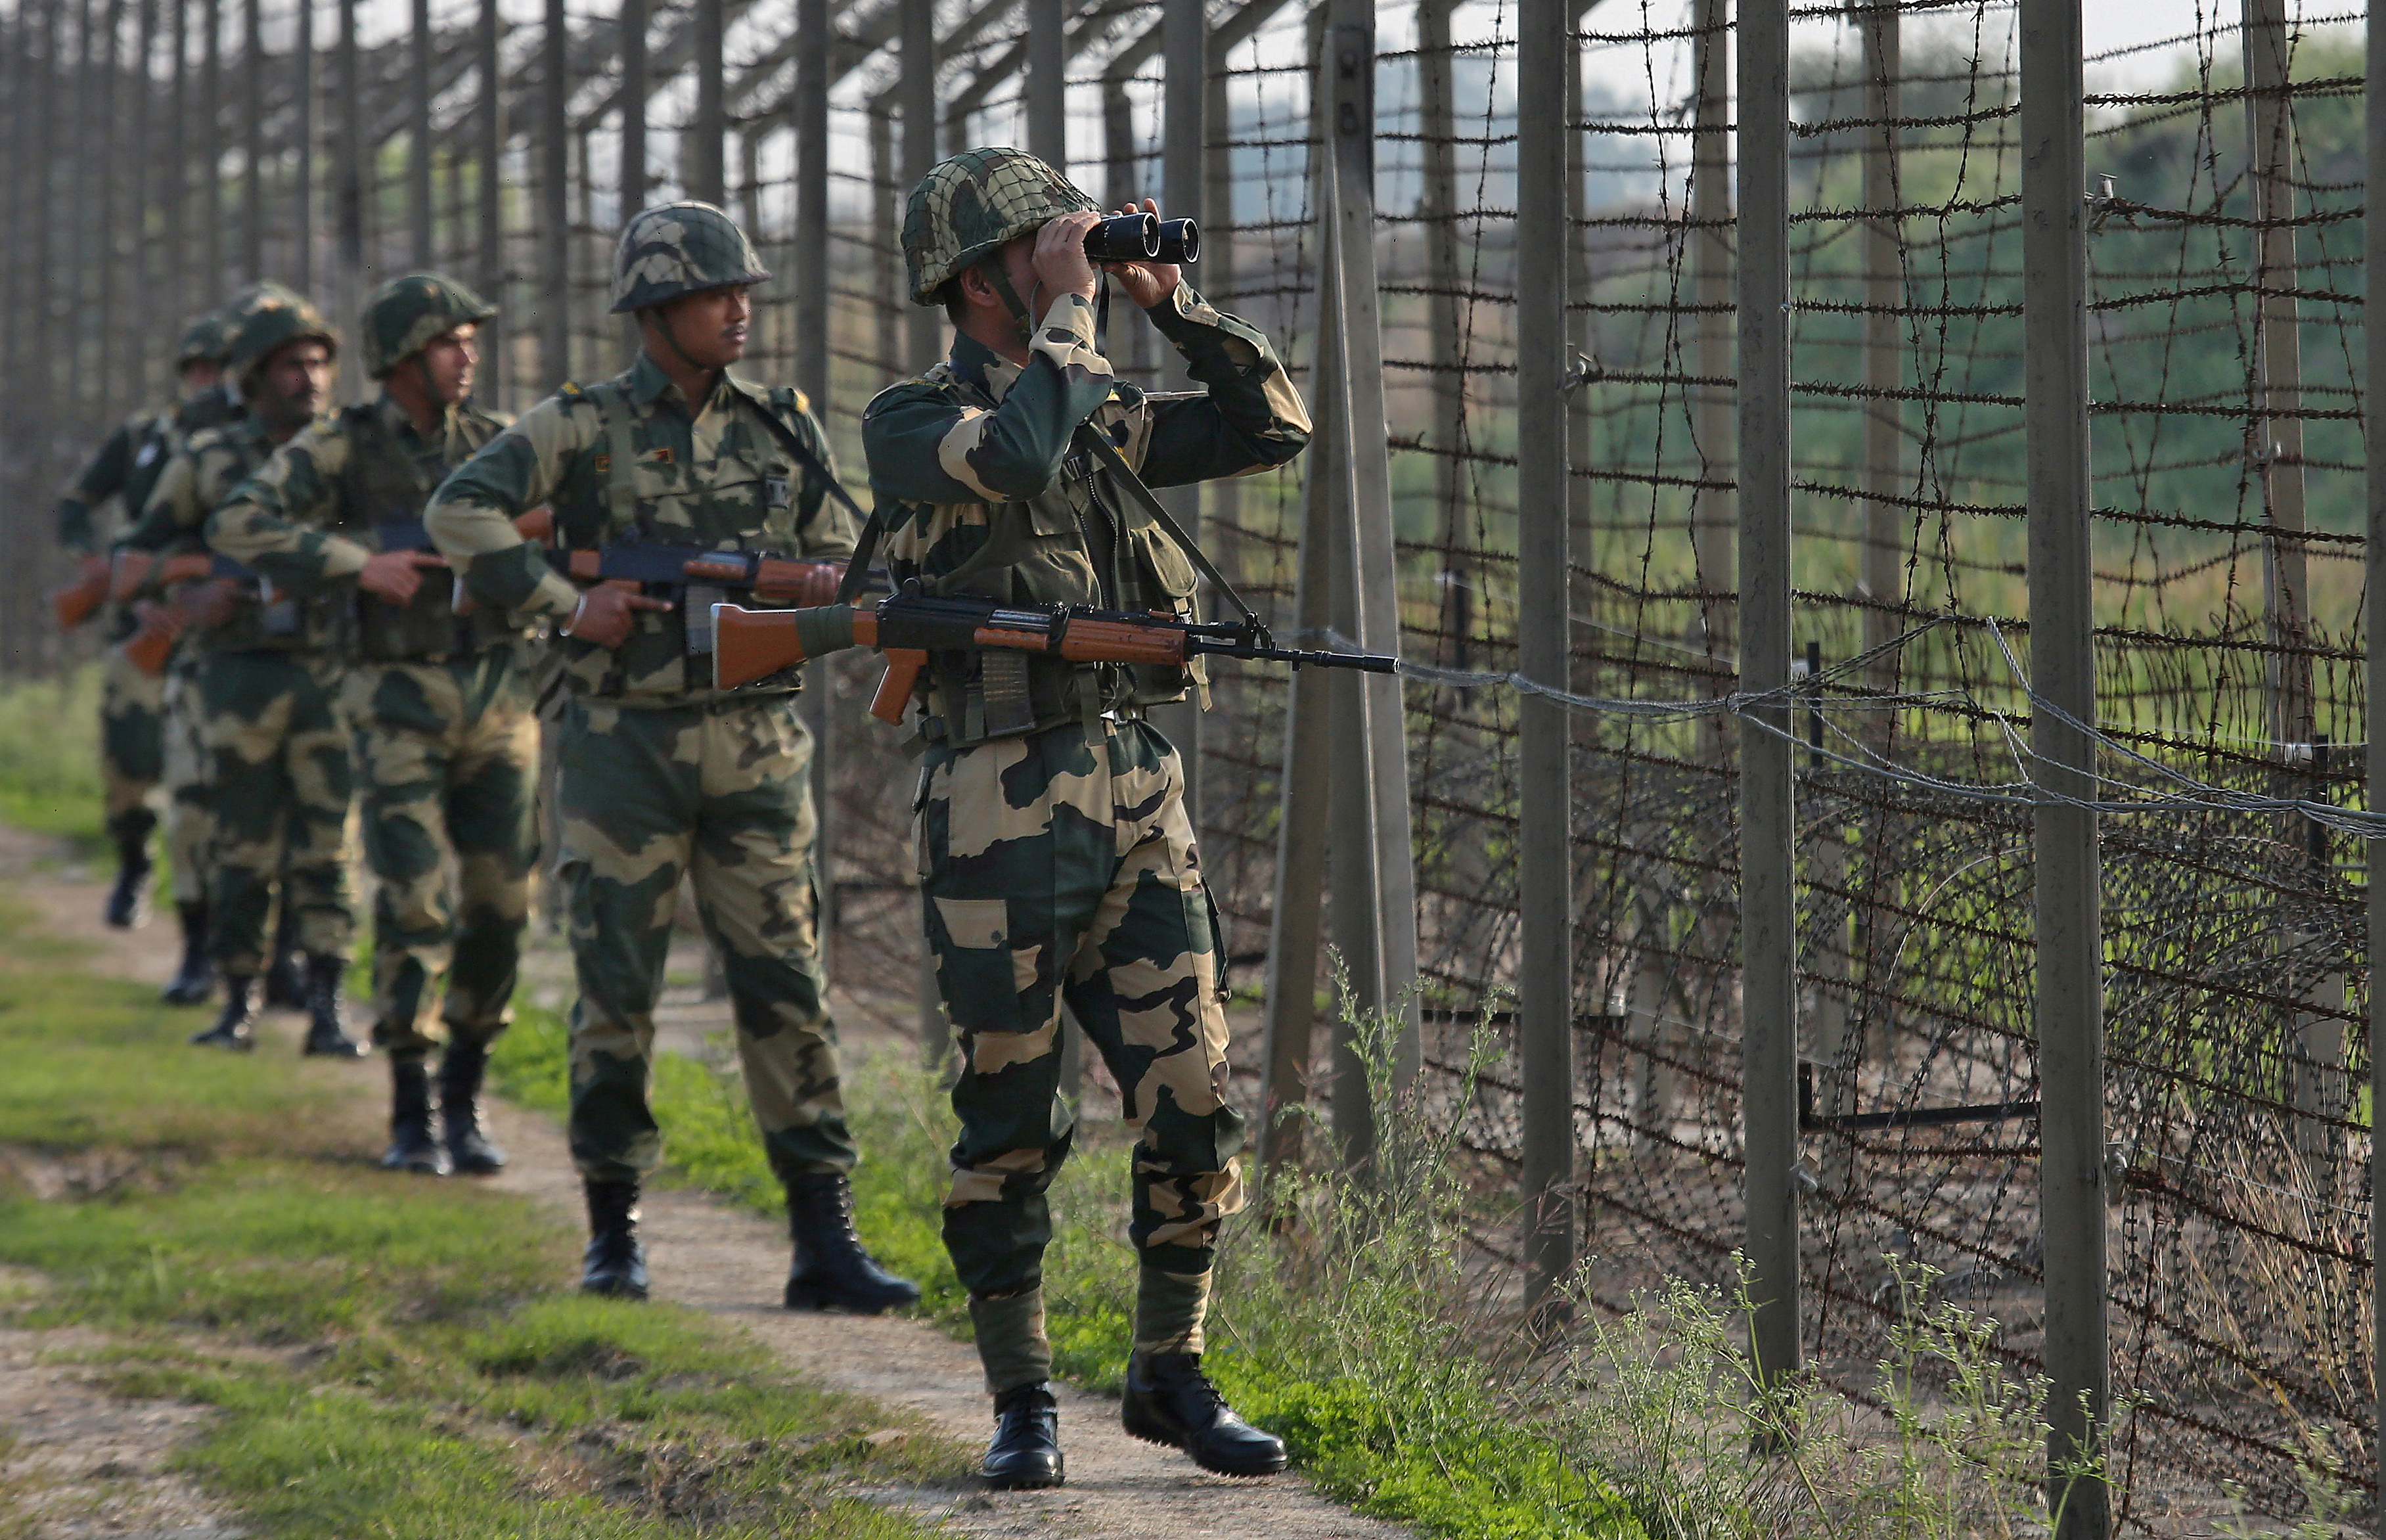 A Skeptics Guide to Managing the India-Pakistan Conflict